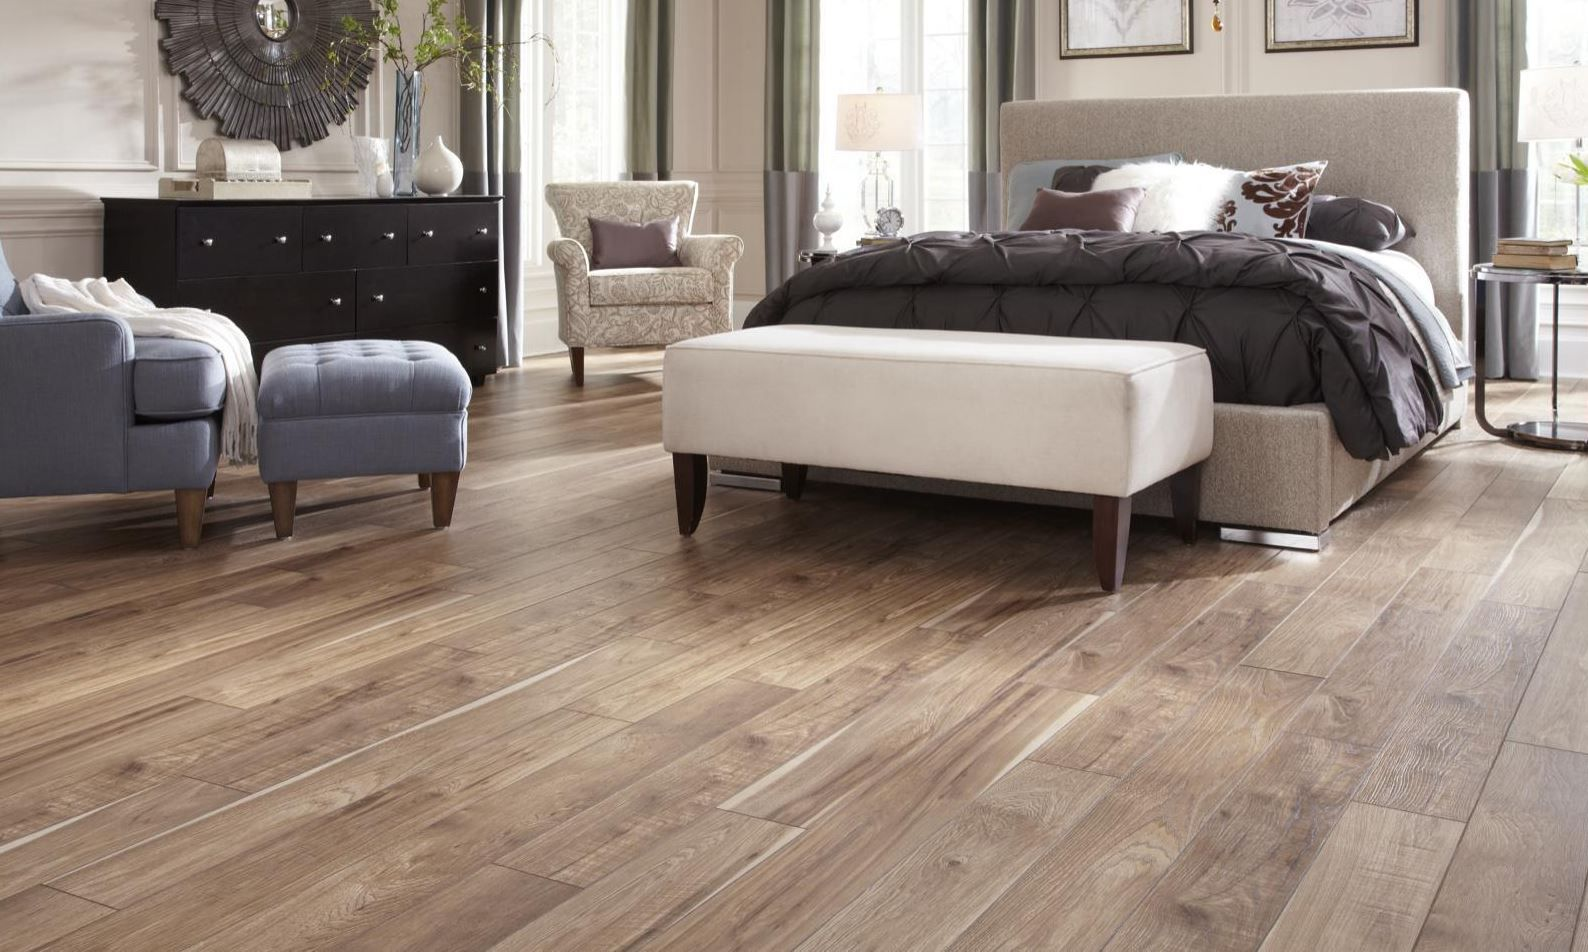 Cheap luxury vinyl plank floor options directory of luxury vinyl tile companies vinyl flooring dailygadgetfo Gallery